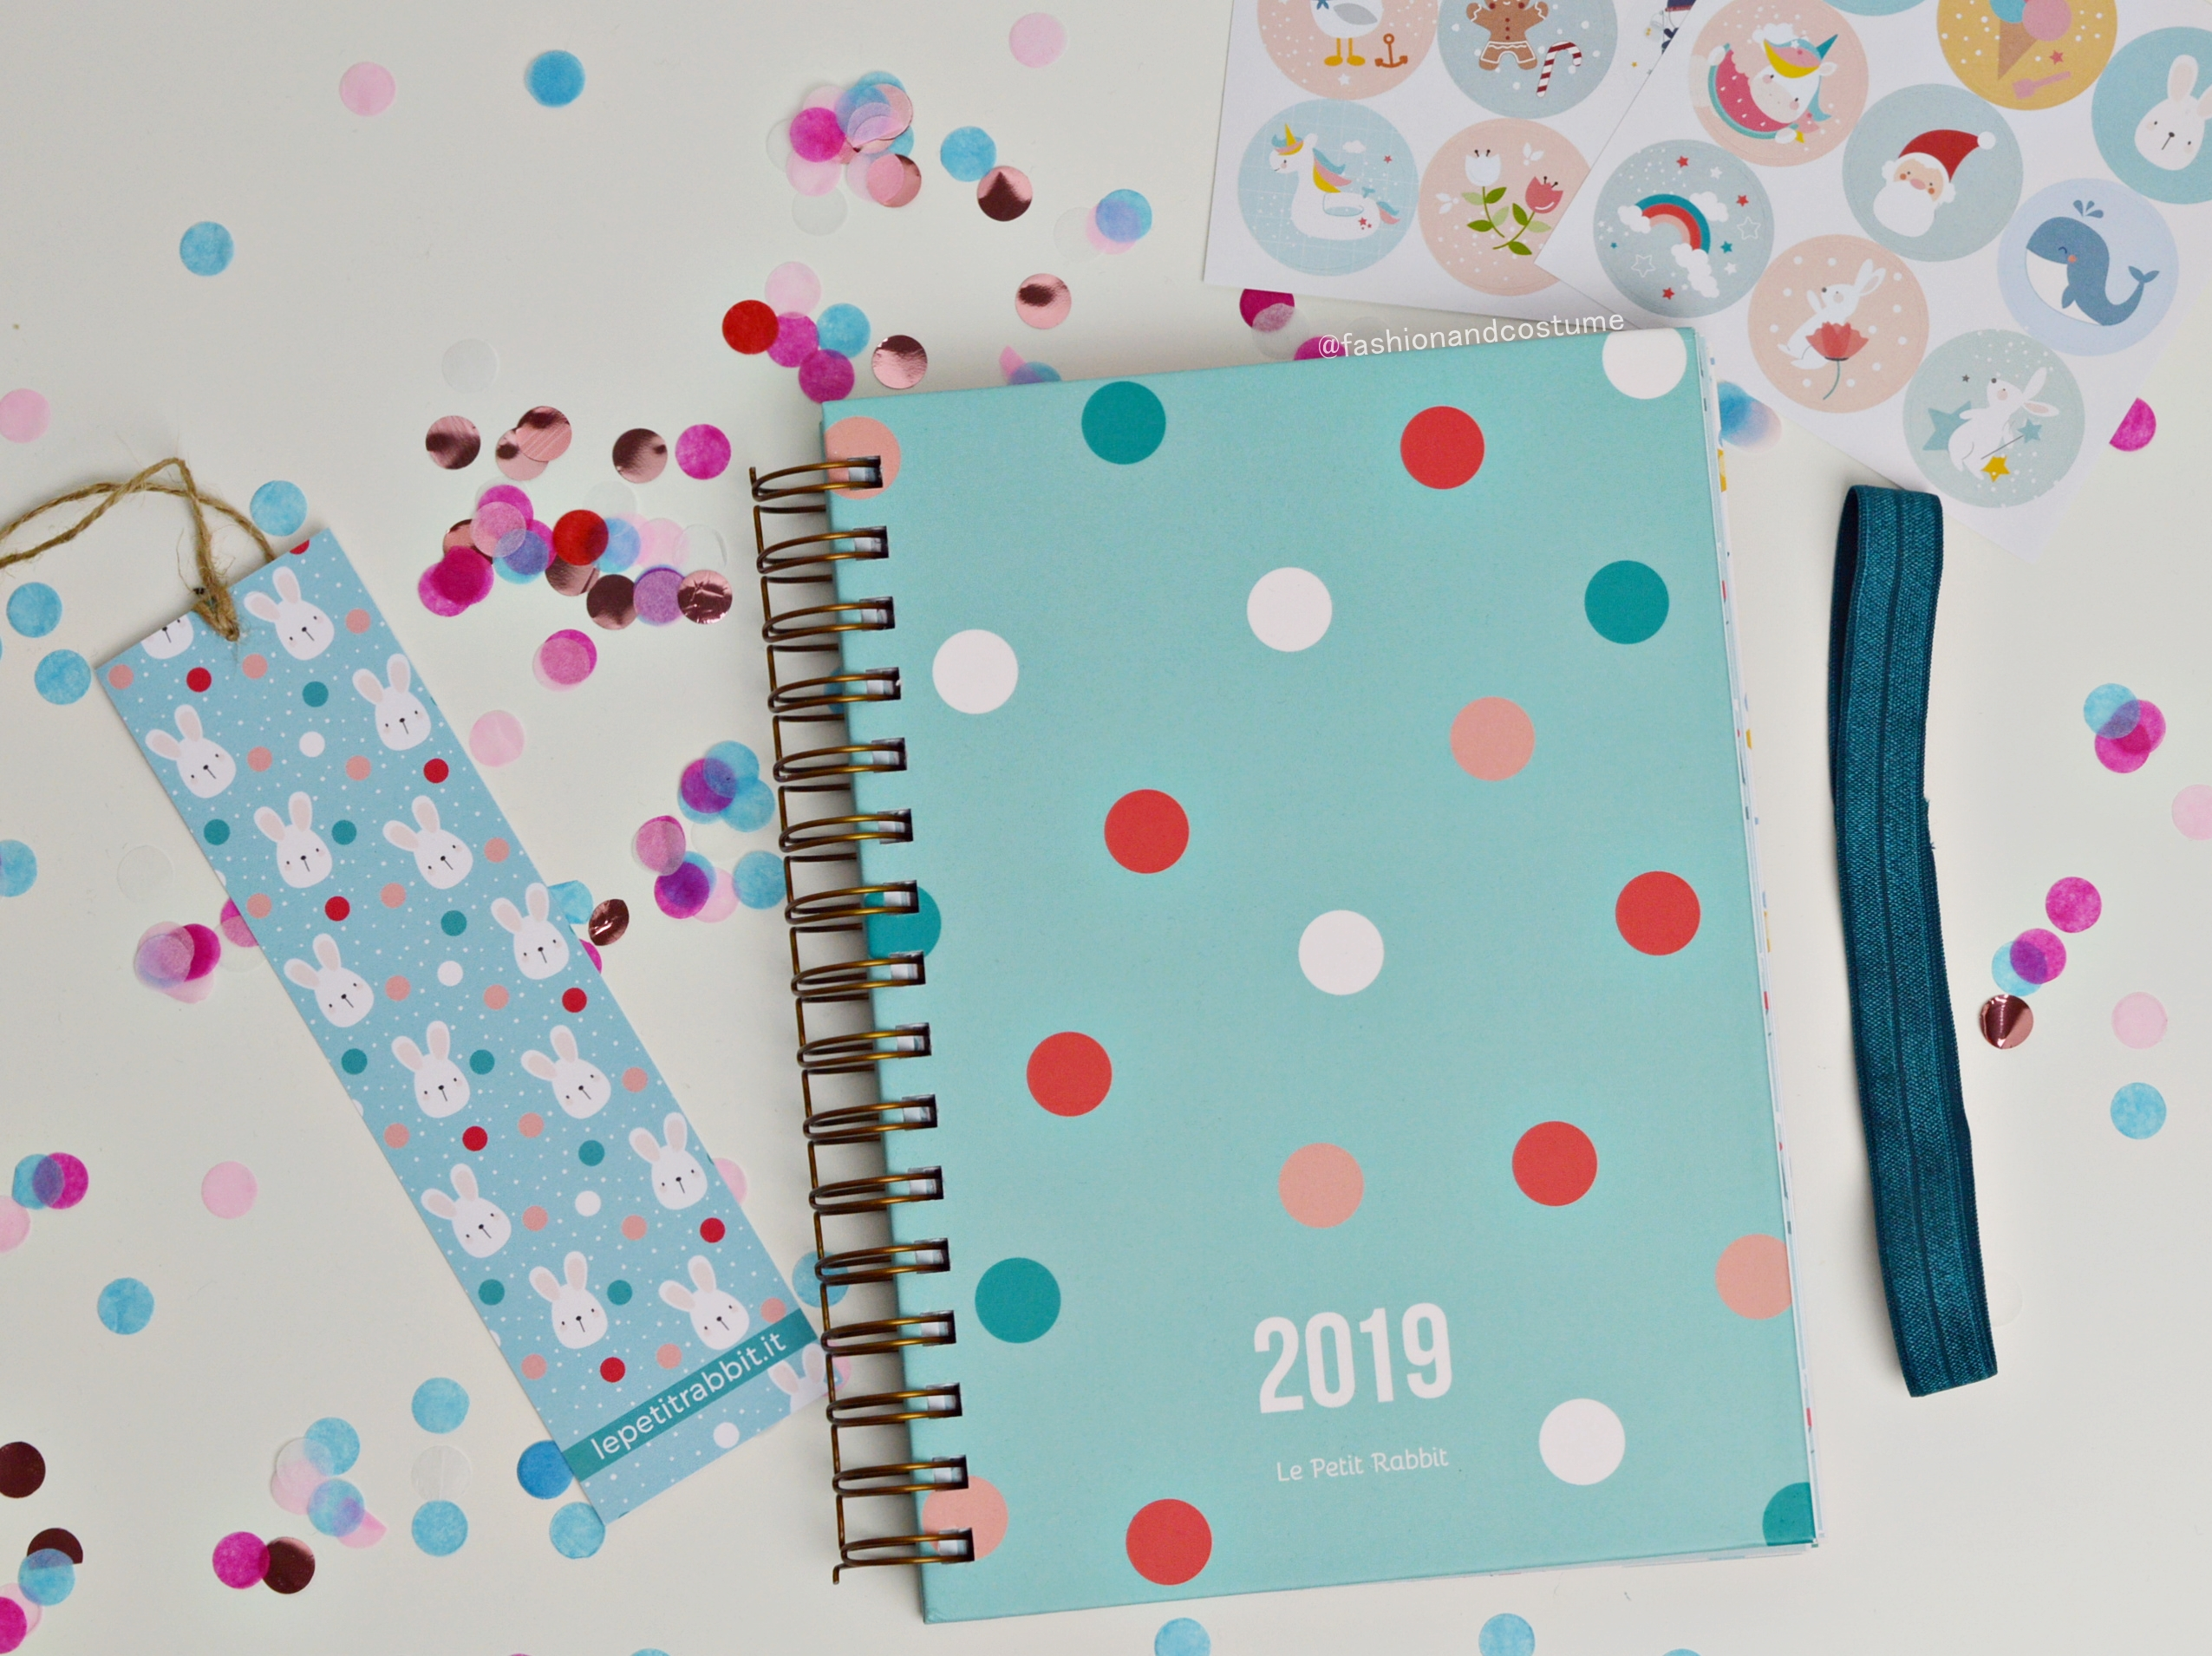 agenda-planner-2019-settimanale-weekly-giulia-lepetitrabbit-le-petit-rabbit-fashion-and-costume-fashionandcostume-graphic-designer-sticker-acquista-online